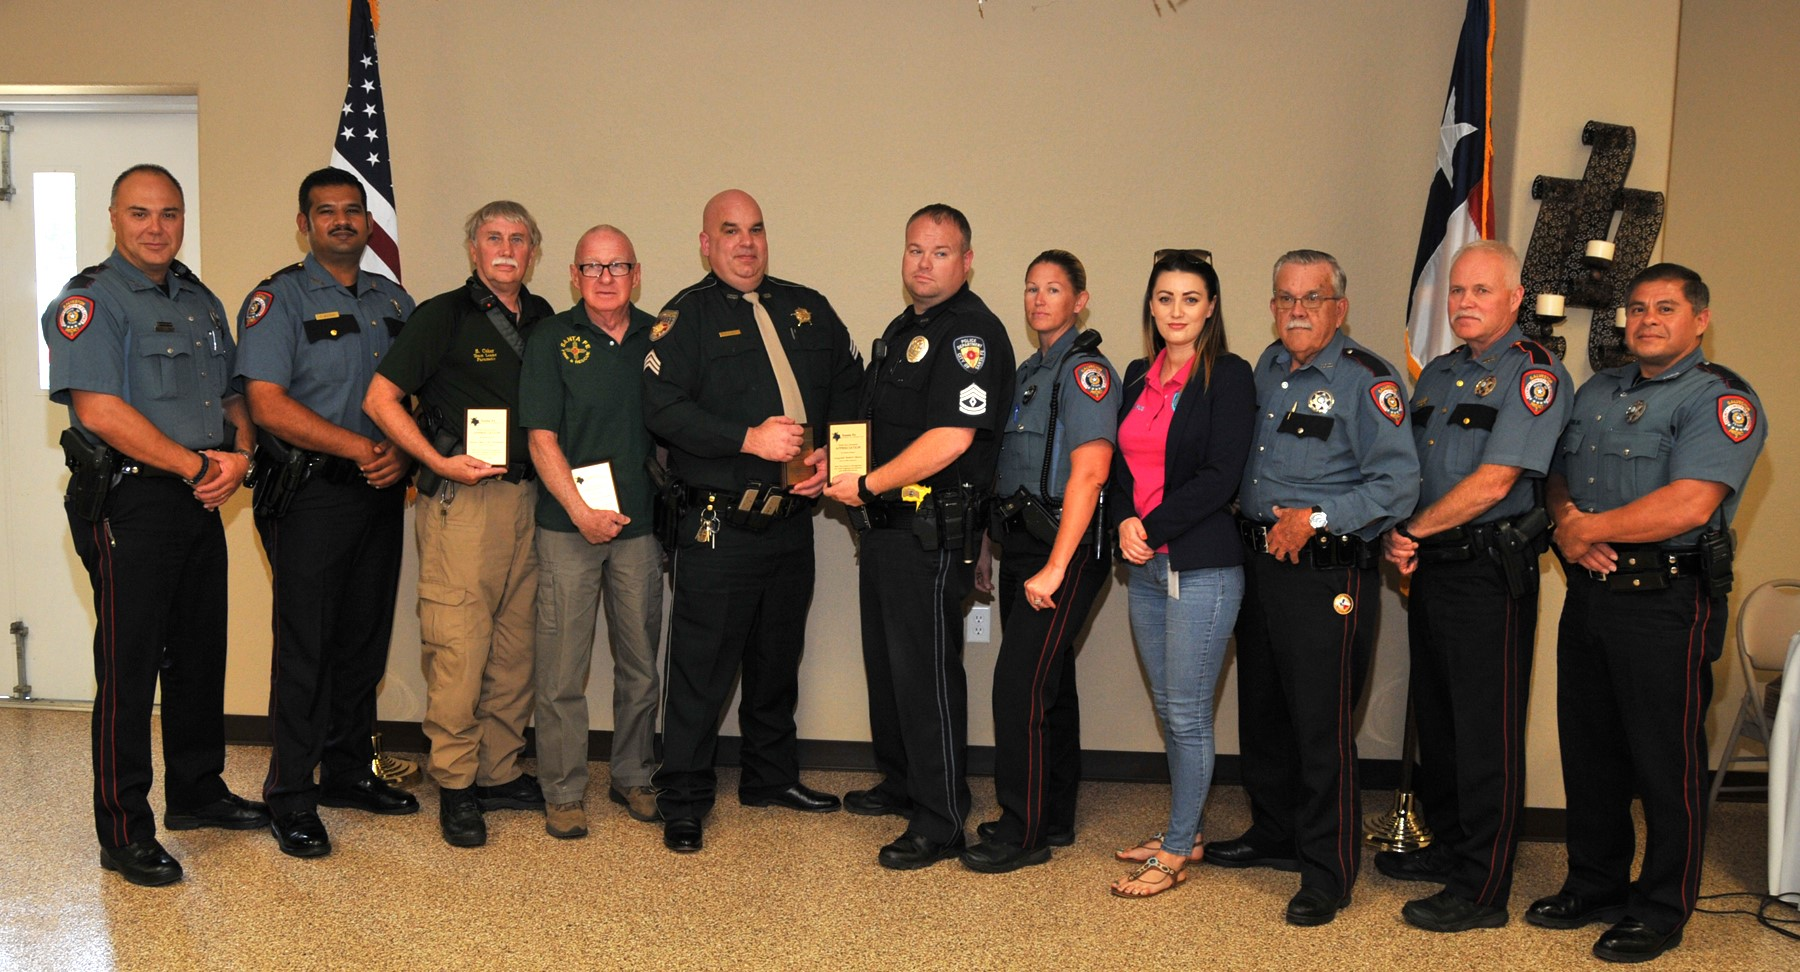 2017 Award Recipients